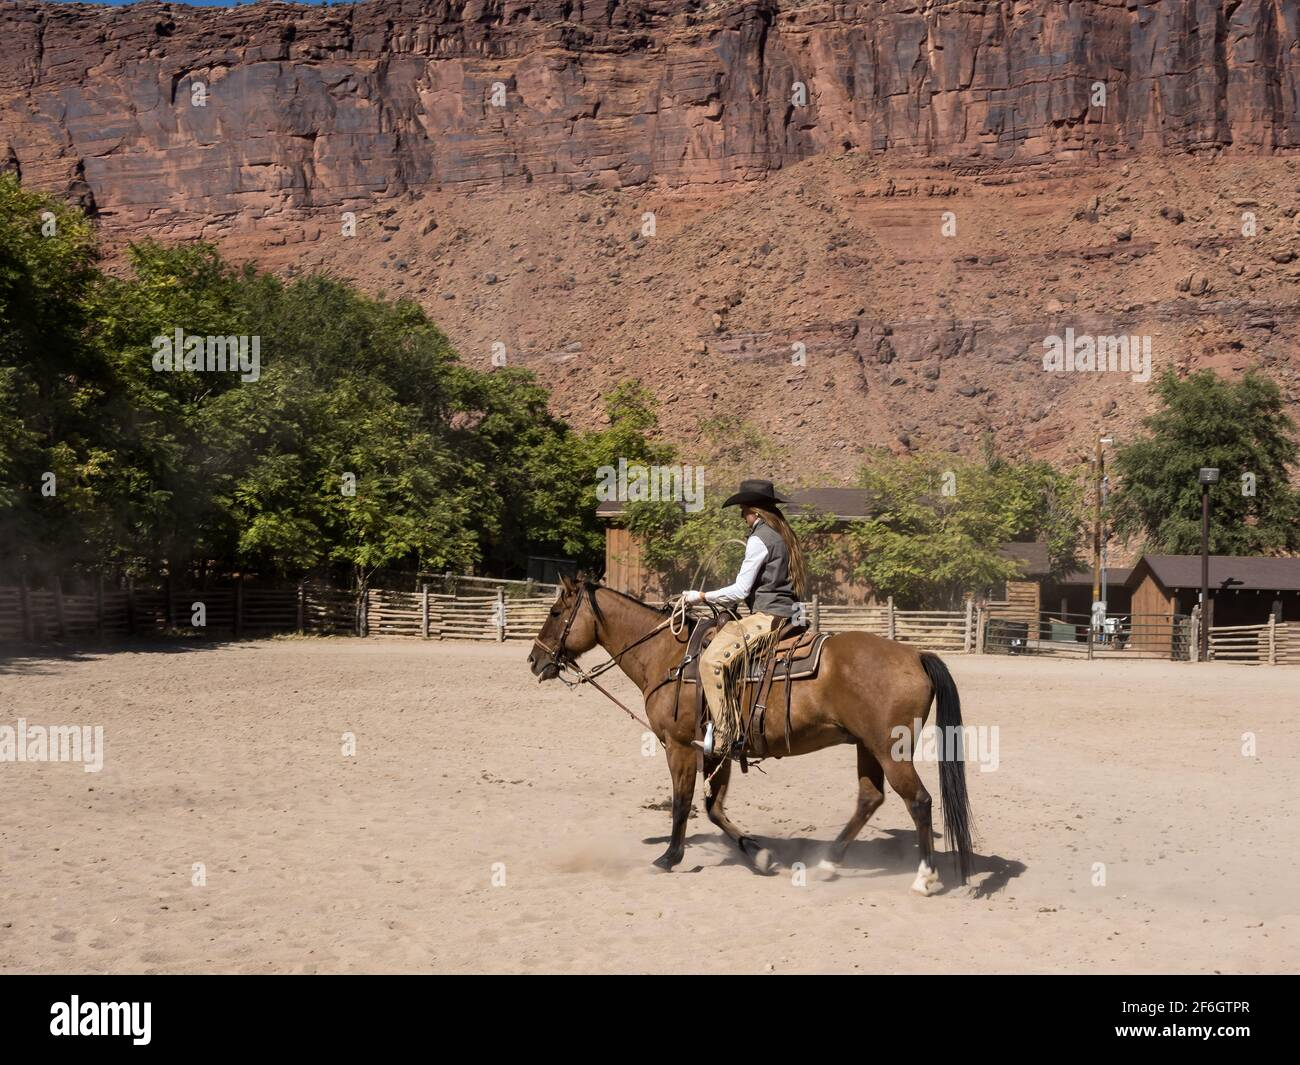 A cowgirl wrangler riding her horse in a corral on a ranch near Moab, Utah.  She wears leather chaps to protect her legs from thorny brush on the rang Stock Photo